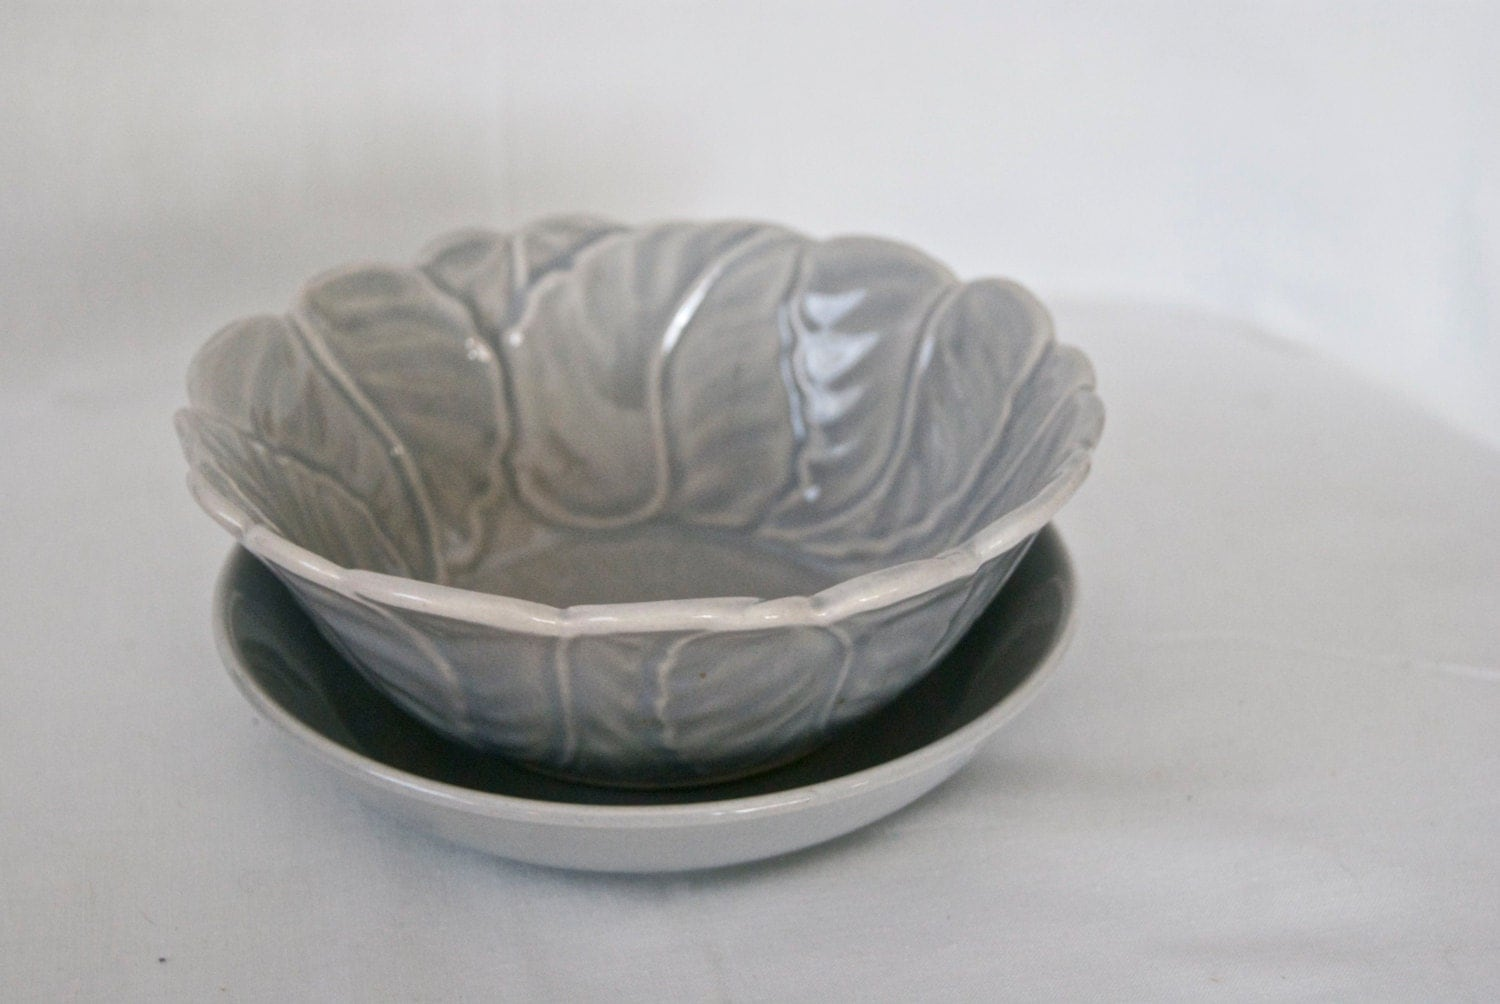 California Pottery Leaf Pattern Serving Bowl Set - MamaAndTheFlowrChild